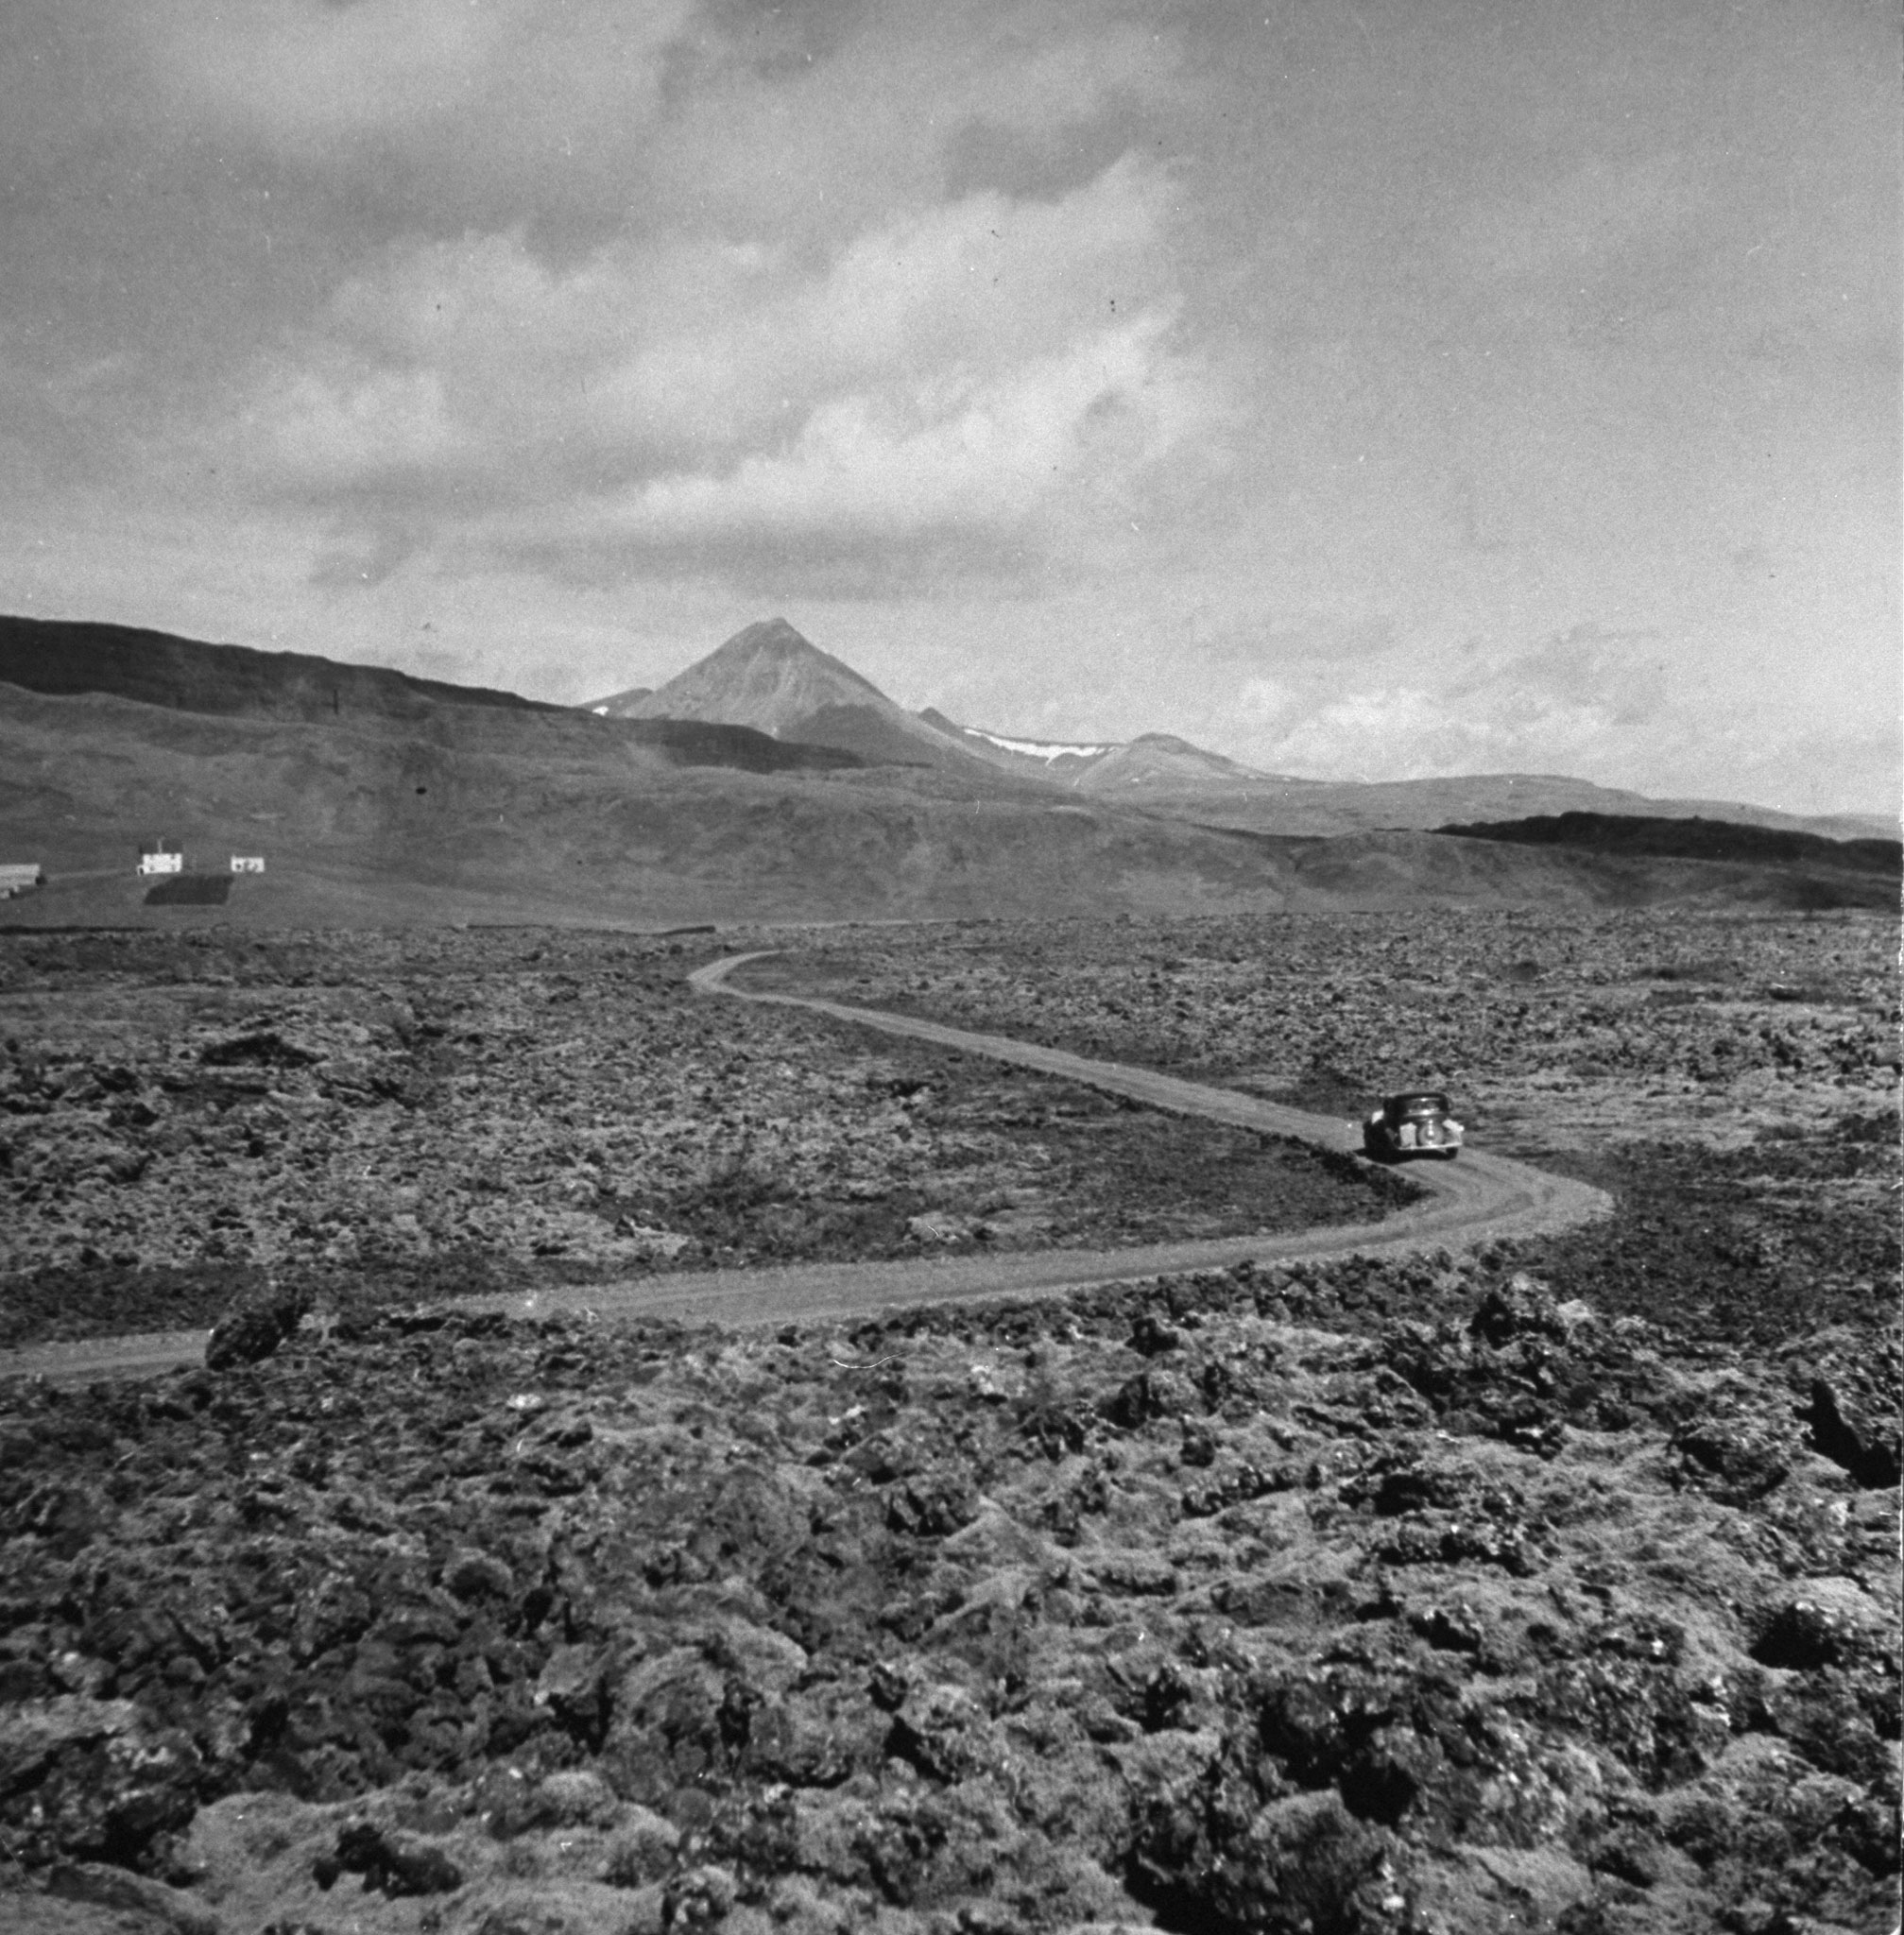 """<b>Caption from print:</b> """"Land without railroads. The roads in Iceland may seem inadequate to the American tourist, but in view of the rough climate and the sparse and scattered population the more than 1,330 miles of roads are an excellent achievement. For hours you sometimes drive on roads like this through miles and miles of lava fields which would be impassable for man or horse."""""""